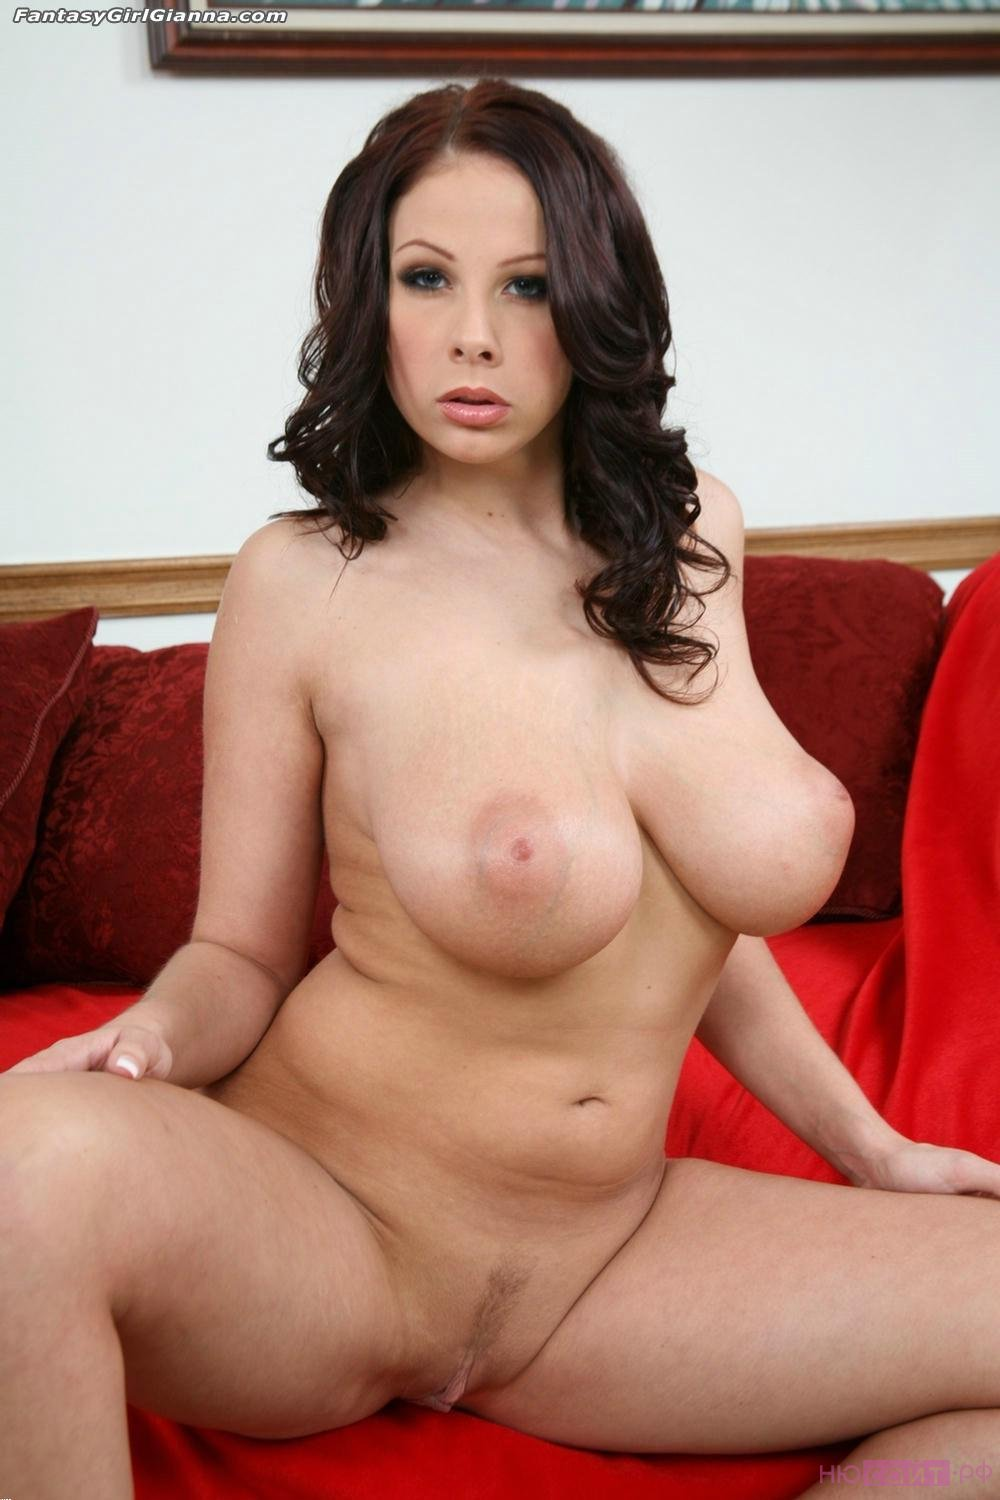 Размеры gianna michaels 9 фотография